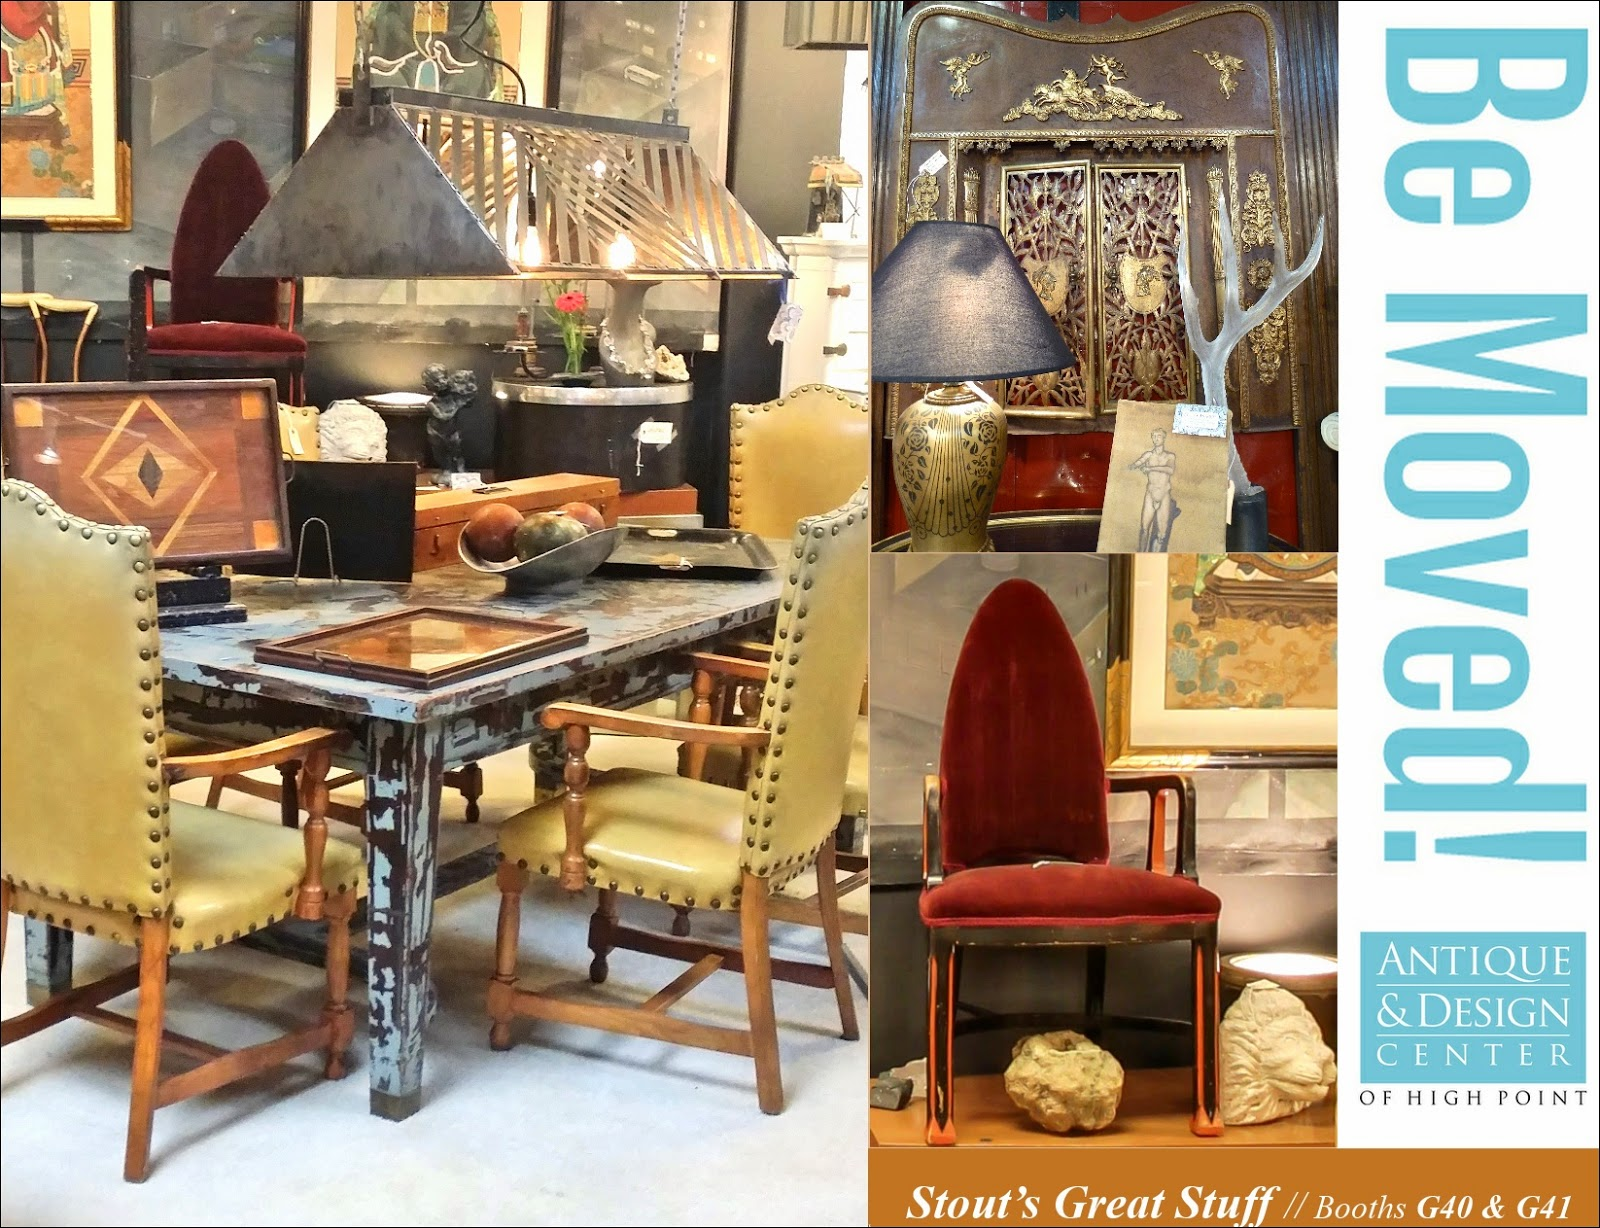 http://highpointantiquecenter.blogspot.com/2014/09/fall-2014-exhibitors-continued-antique.html